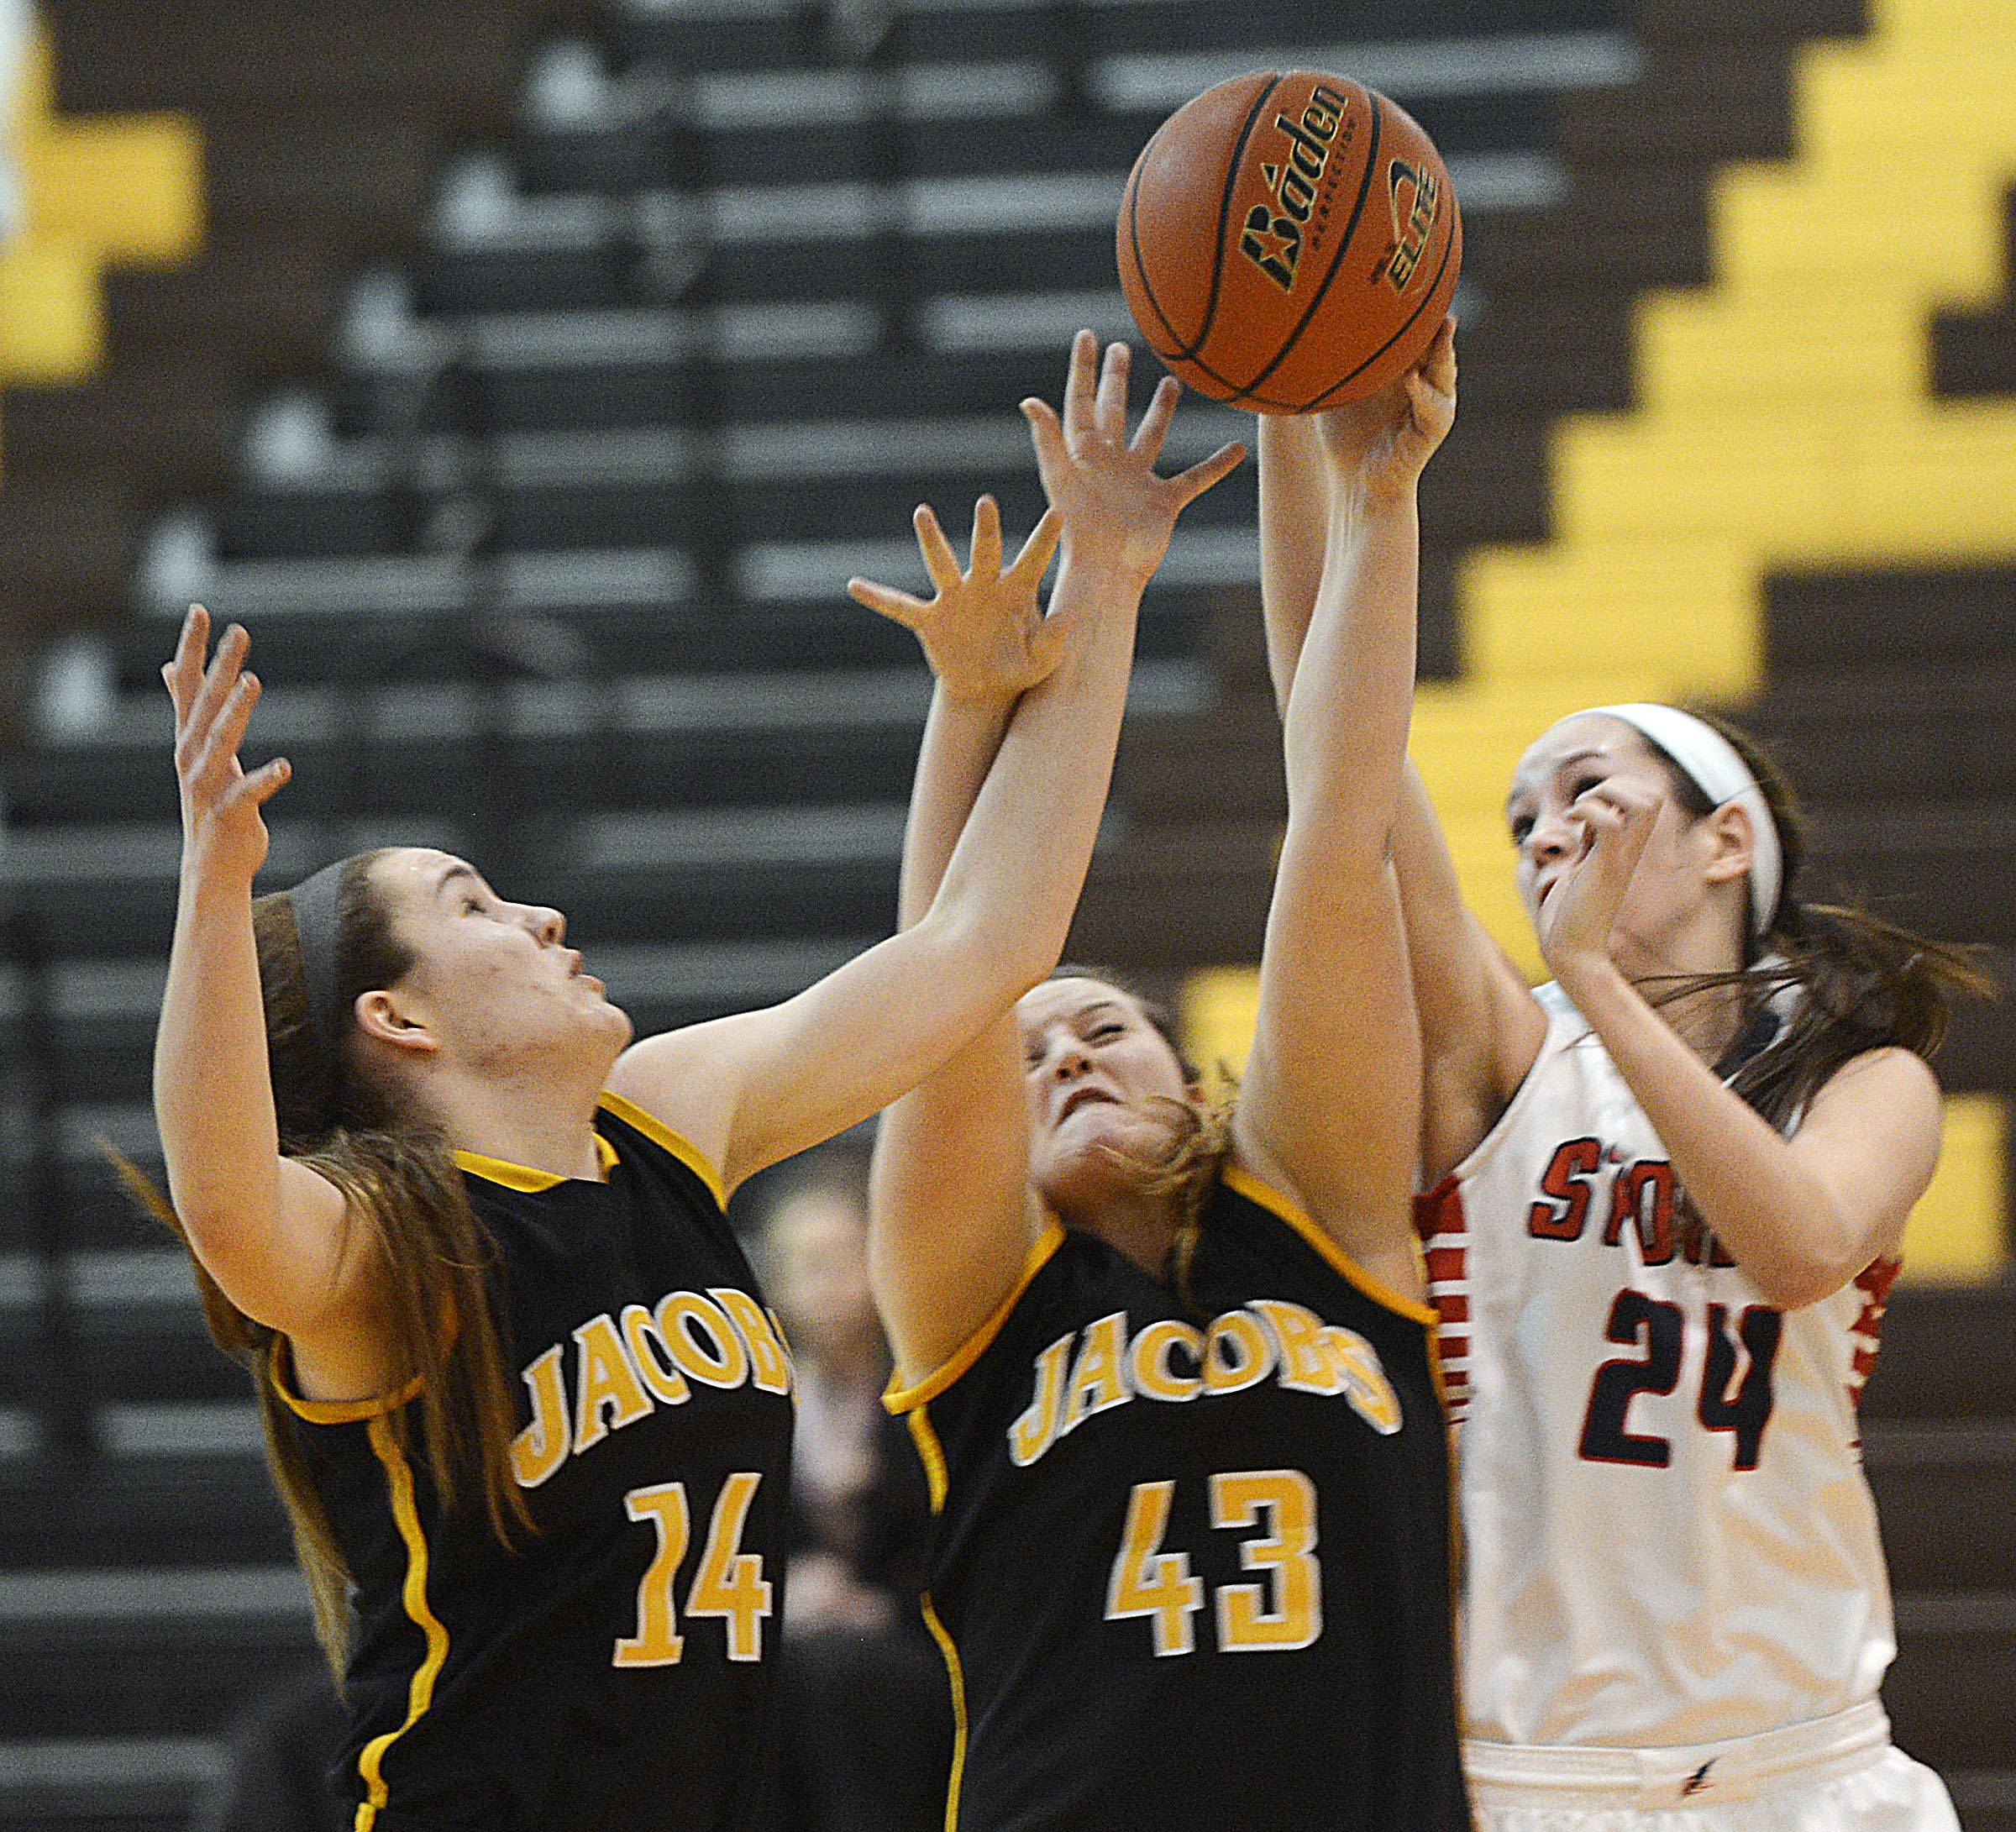 Jacobs and South Elgin players reach for a rebound Tuesday in Algonquin.